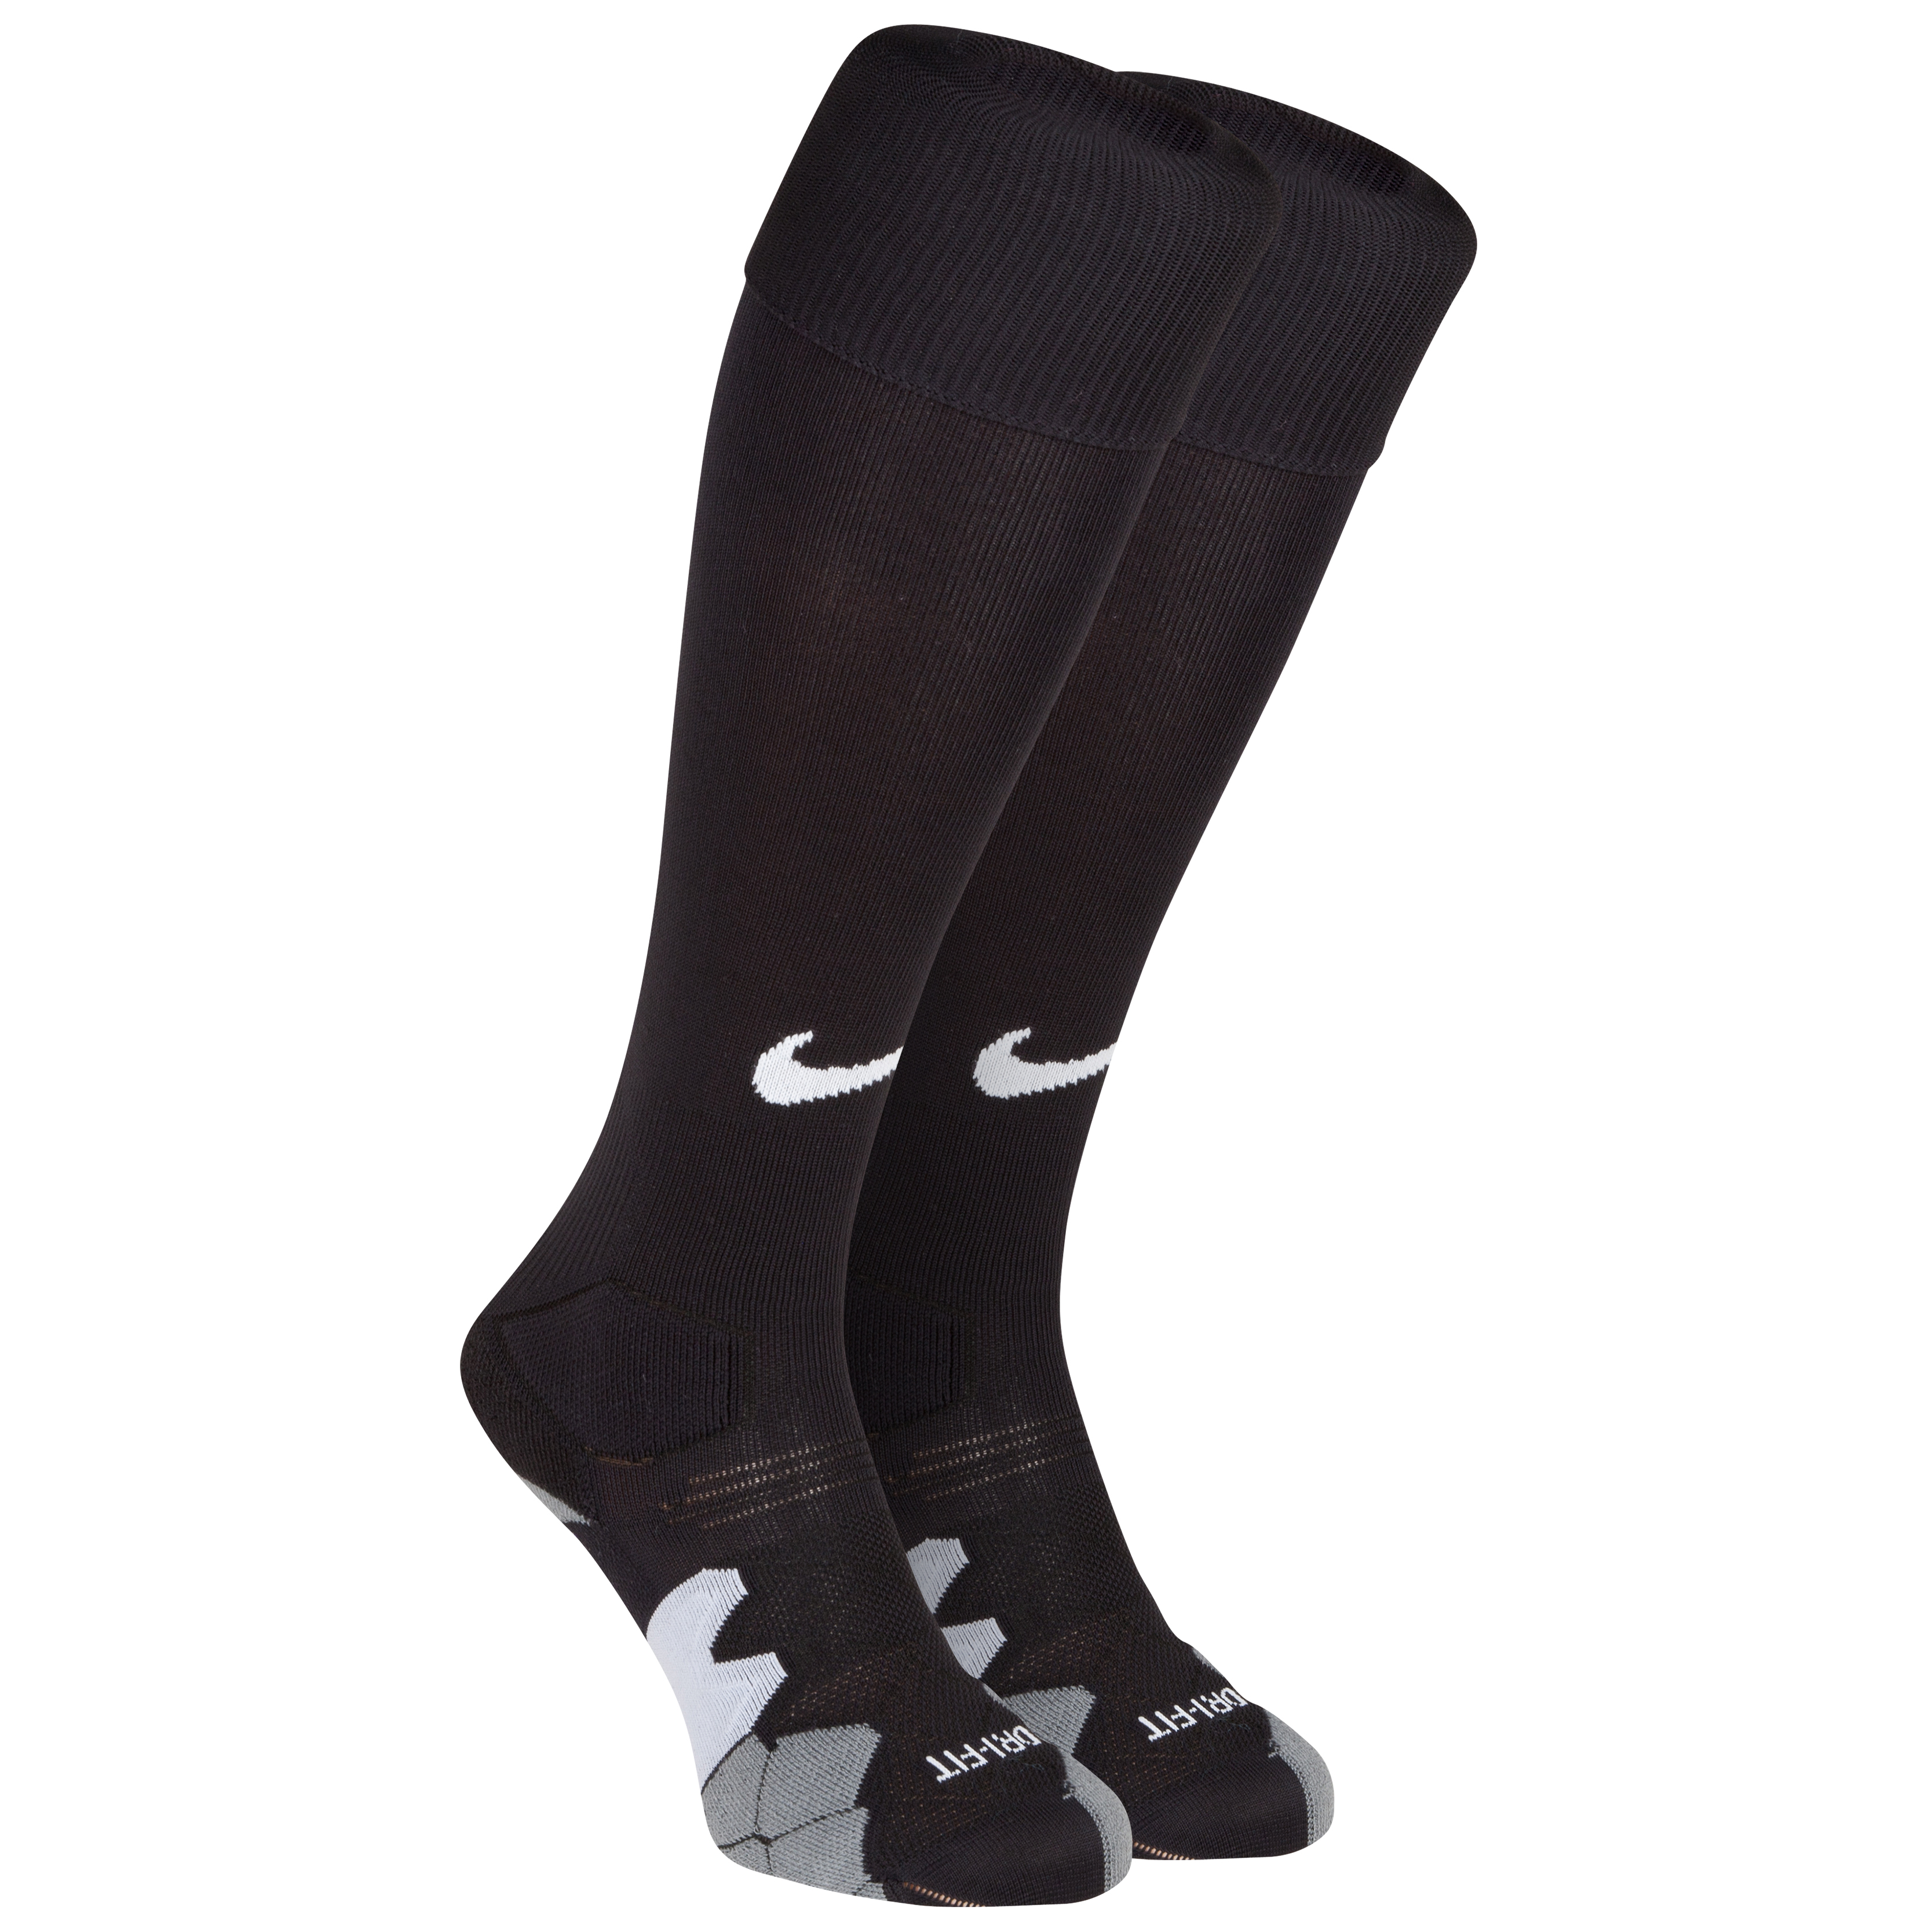 Portugal Away Sock 2013/14 - Black/Midnight Fog/Football White